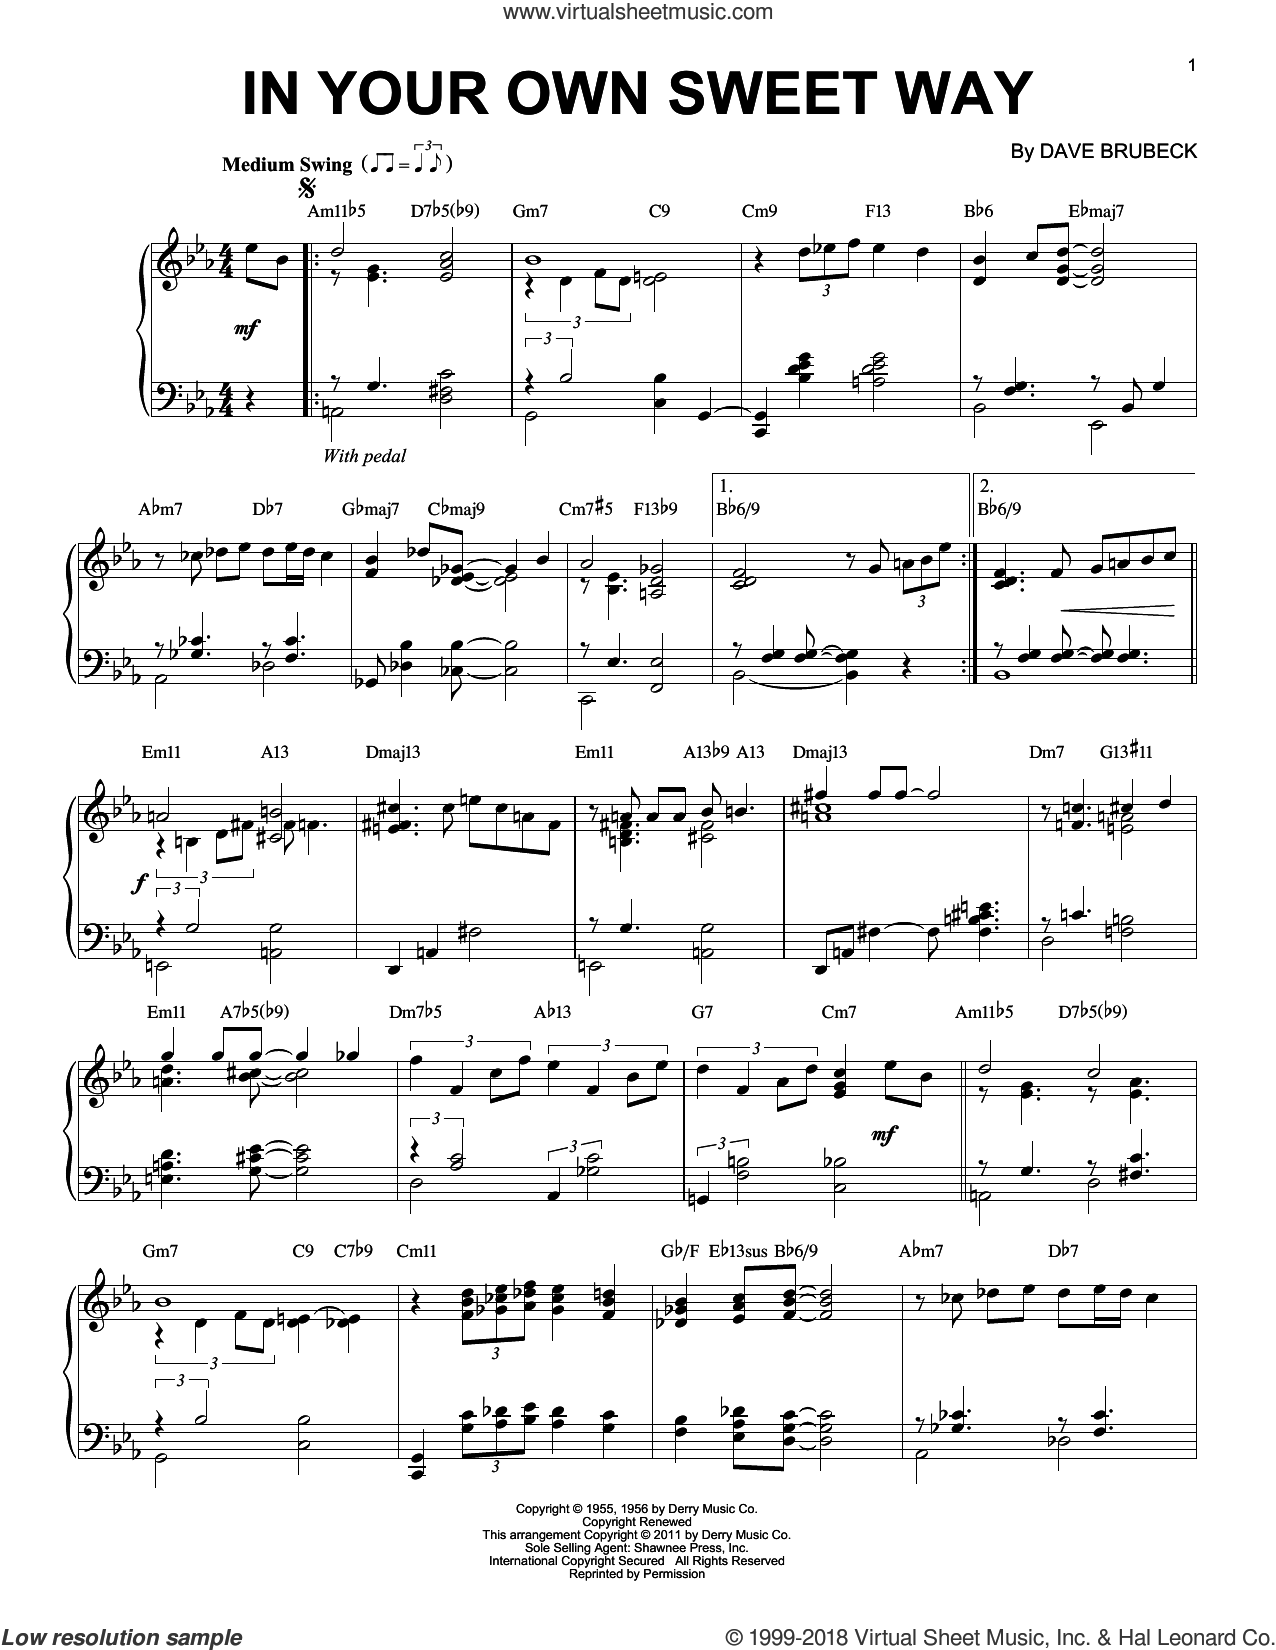 In Your Own Sweet Way sheet music for piano solo by Dave Brubeck, intermediate skill level